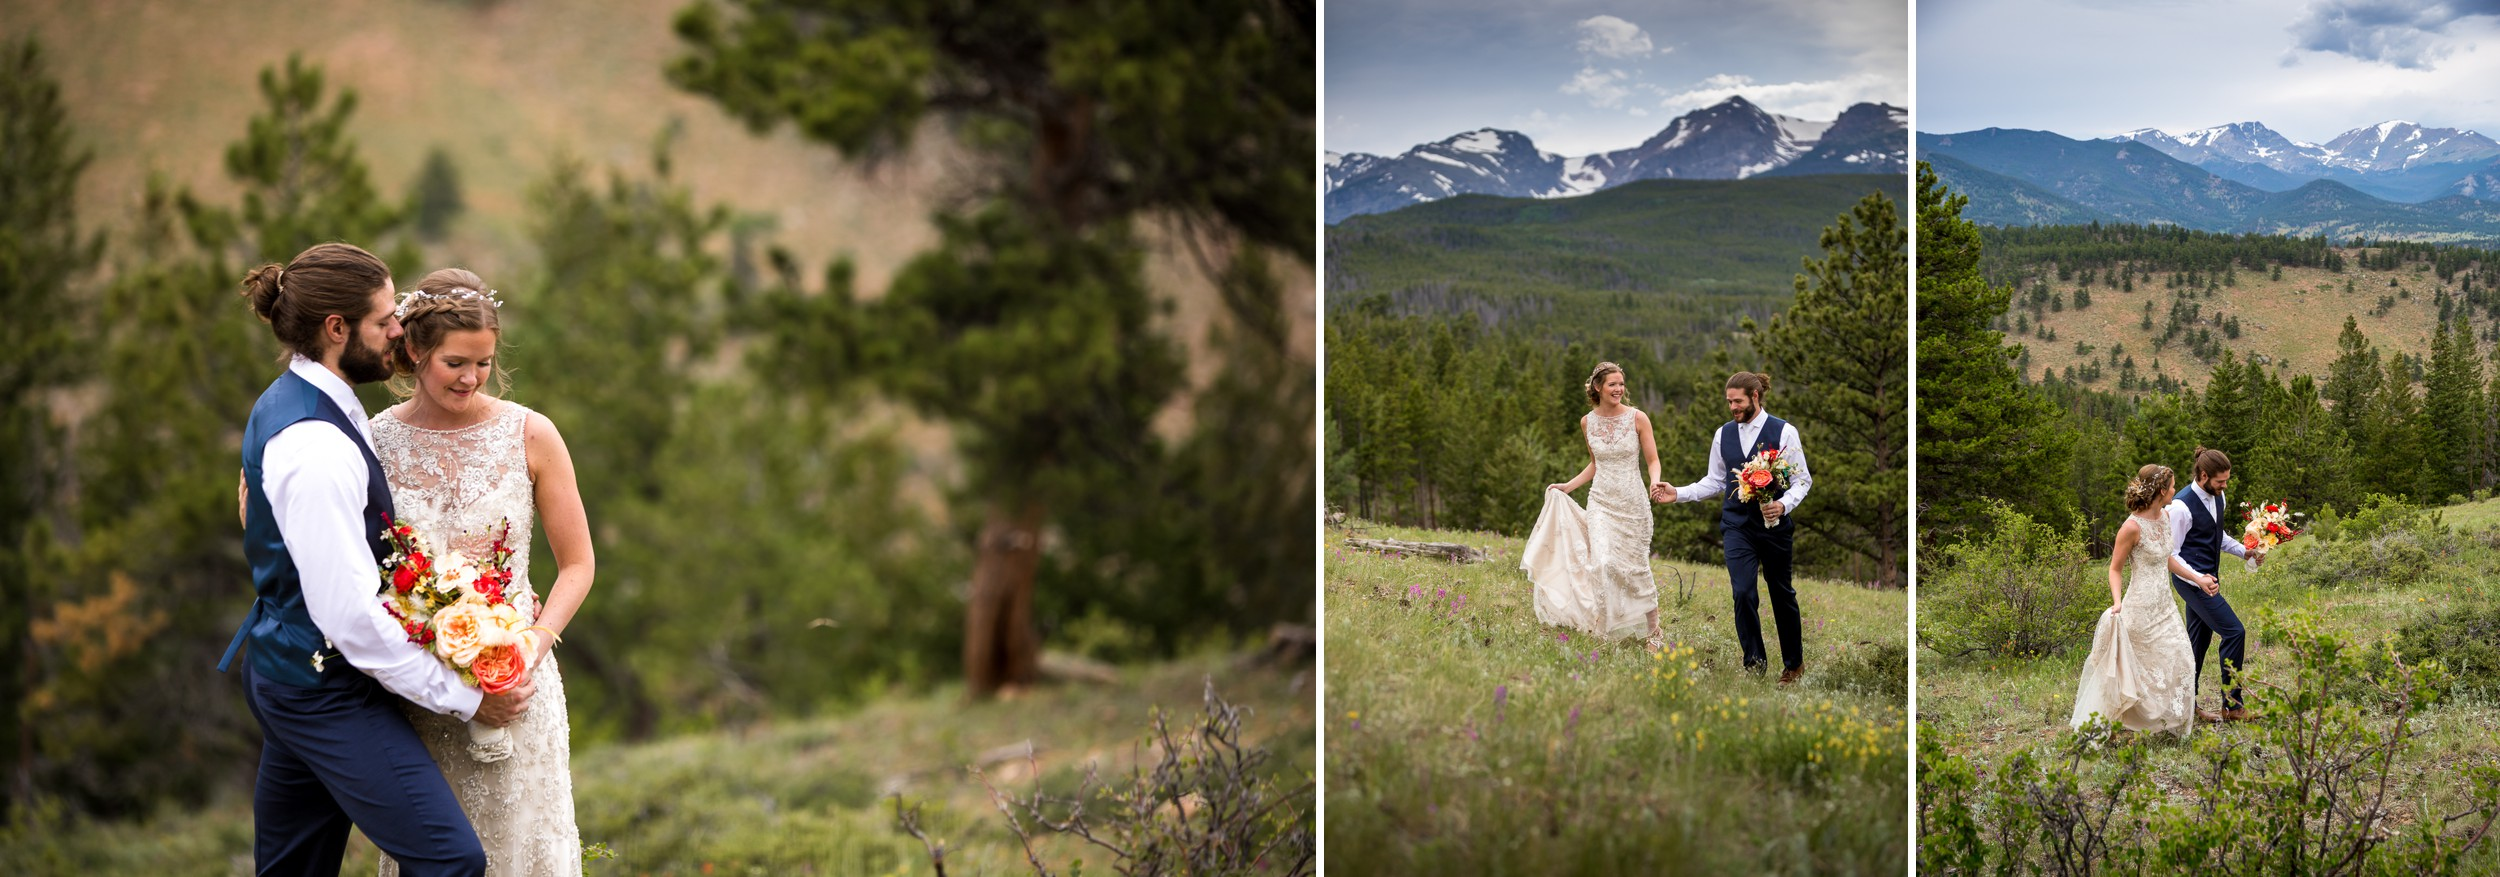 YMCA_Rockies_Estes_Park_Colorado_Kristopher_Lindsay_Photography_ 10.jpg